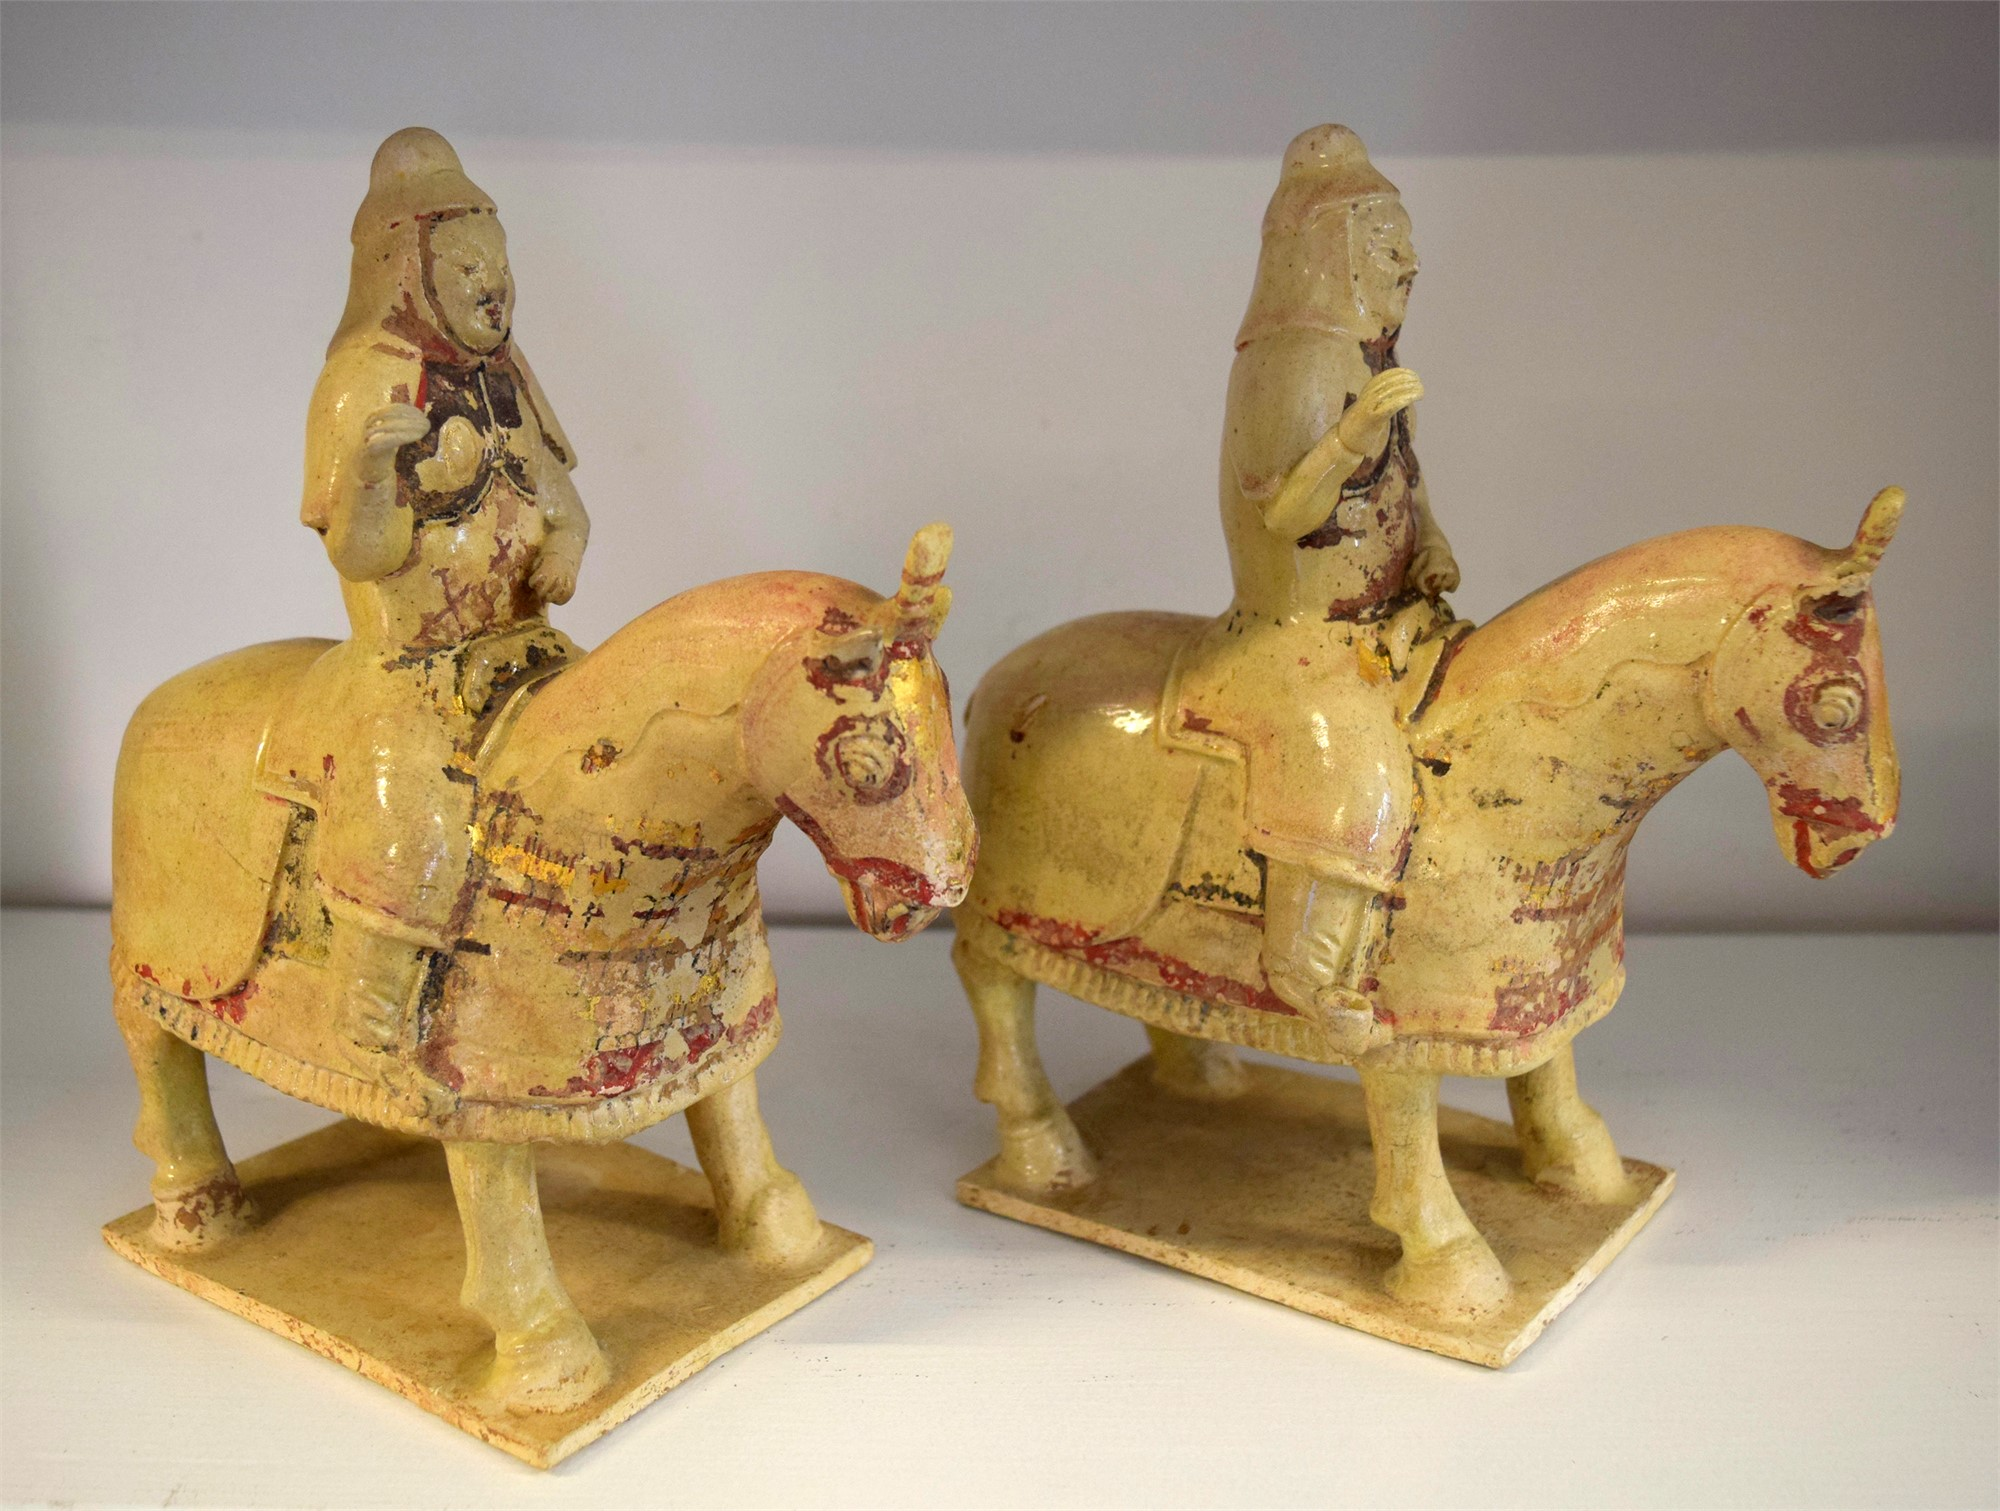 PAIR OF SMALL STRAW-GLAZED POTTERY of ARMORED EQUESTRIANS